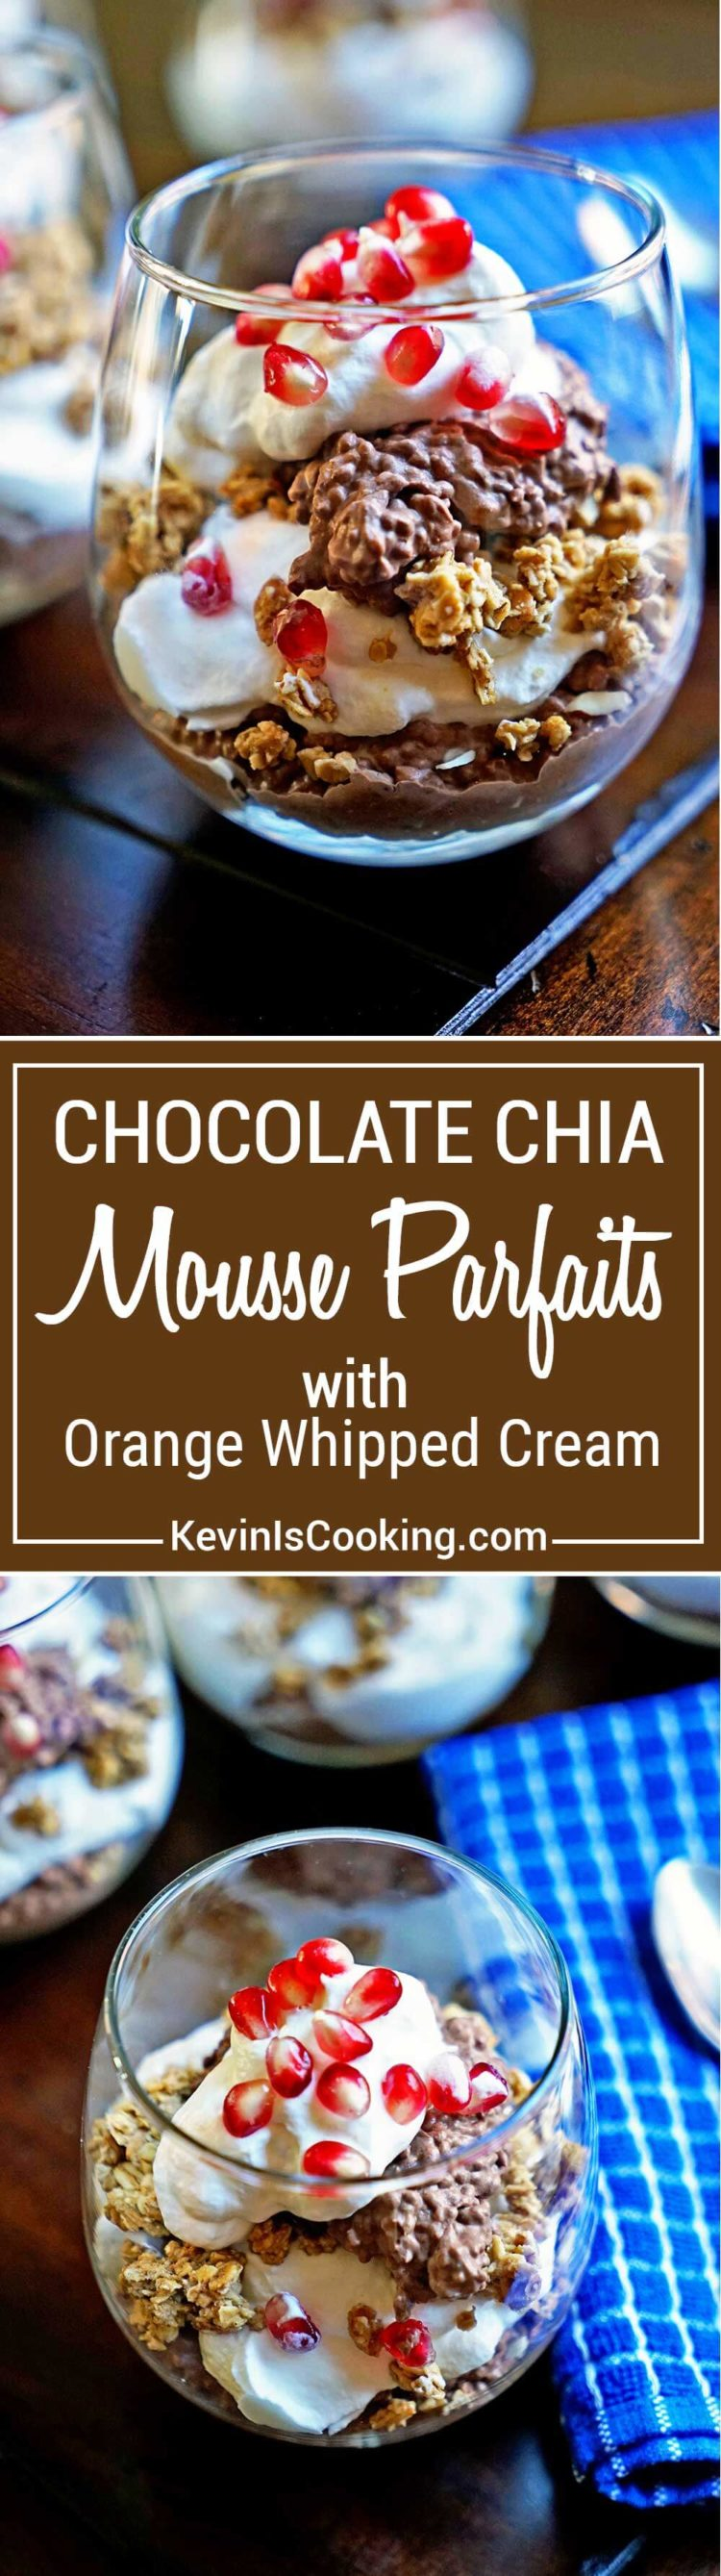 These Chocolate Chia Mousse Parfaits are made with coconut milk, chia seeds, rich cocoa and layered with granola and orange flavored whipped cream. Family an friends LOVE this one!